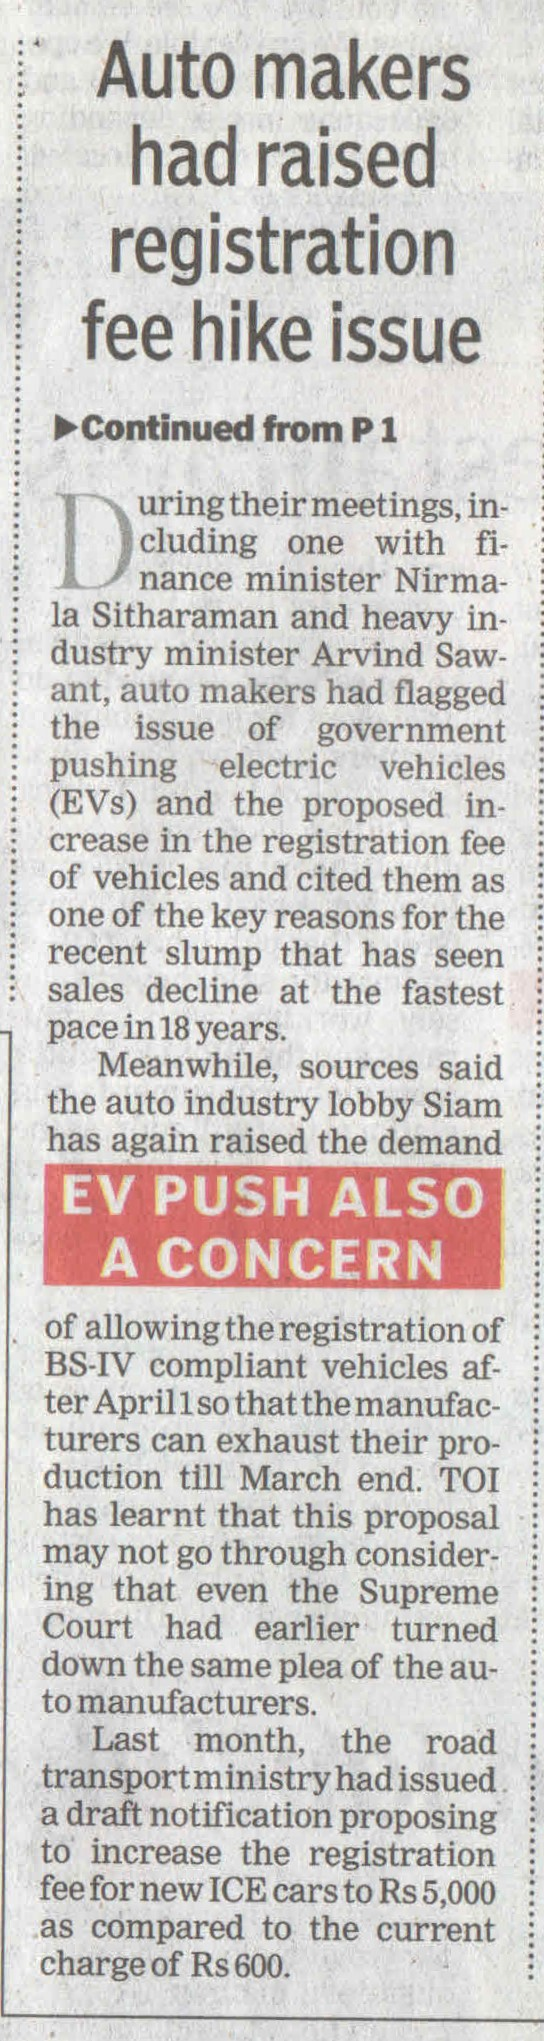 Auto makers had raised registration fee hike issue